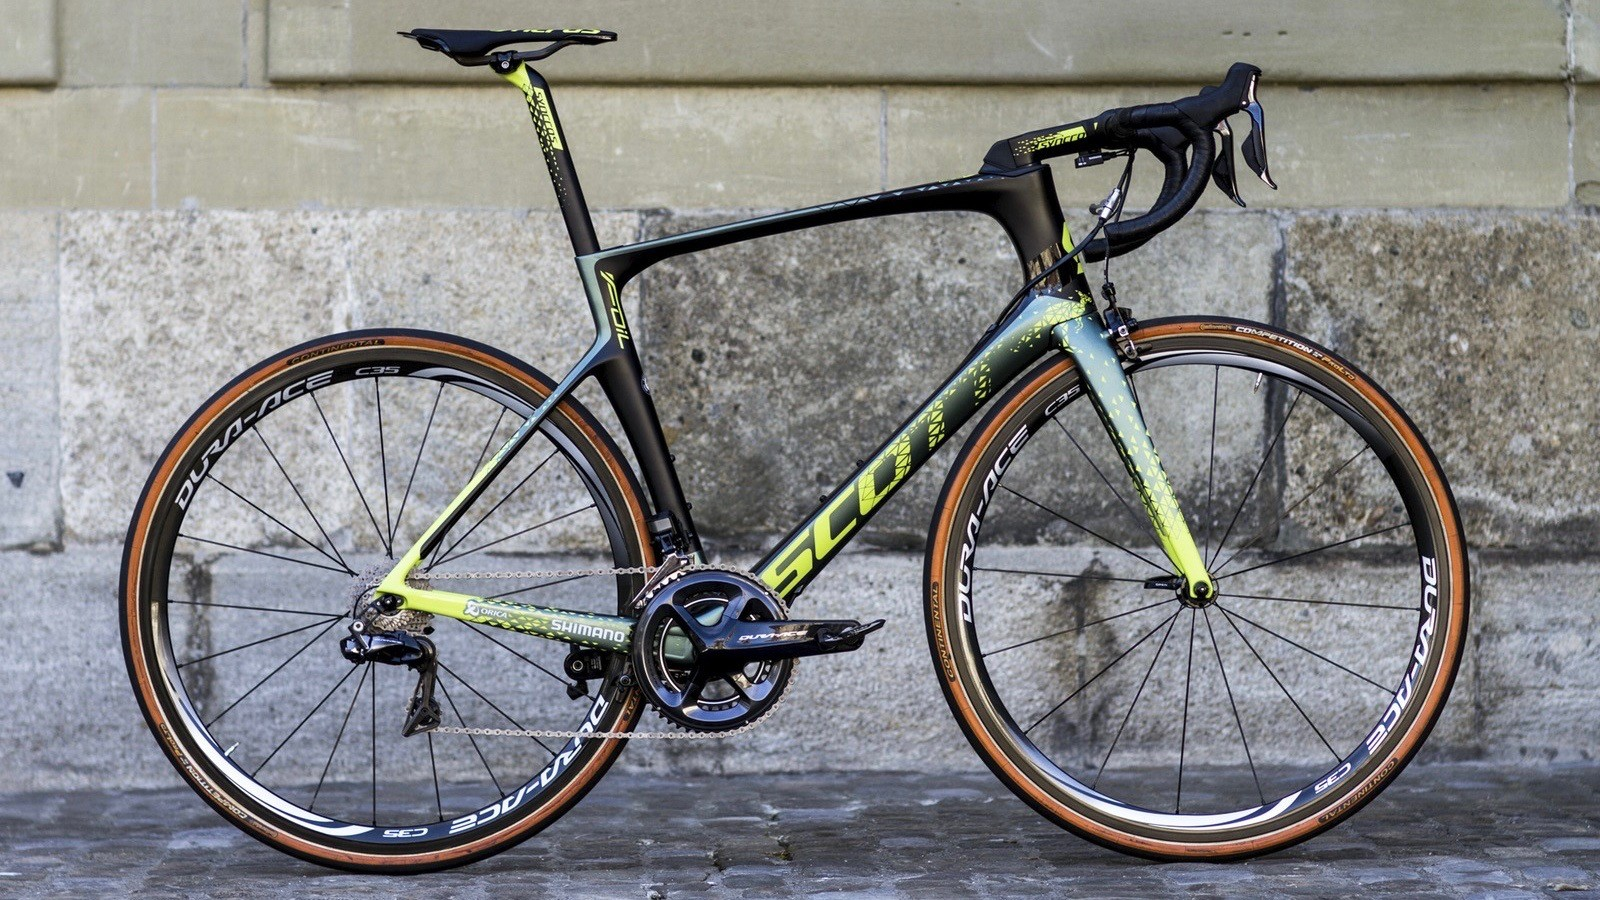 Mathew Hayman's special edition Scott Foil RC for Paris-Roubaix